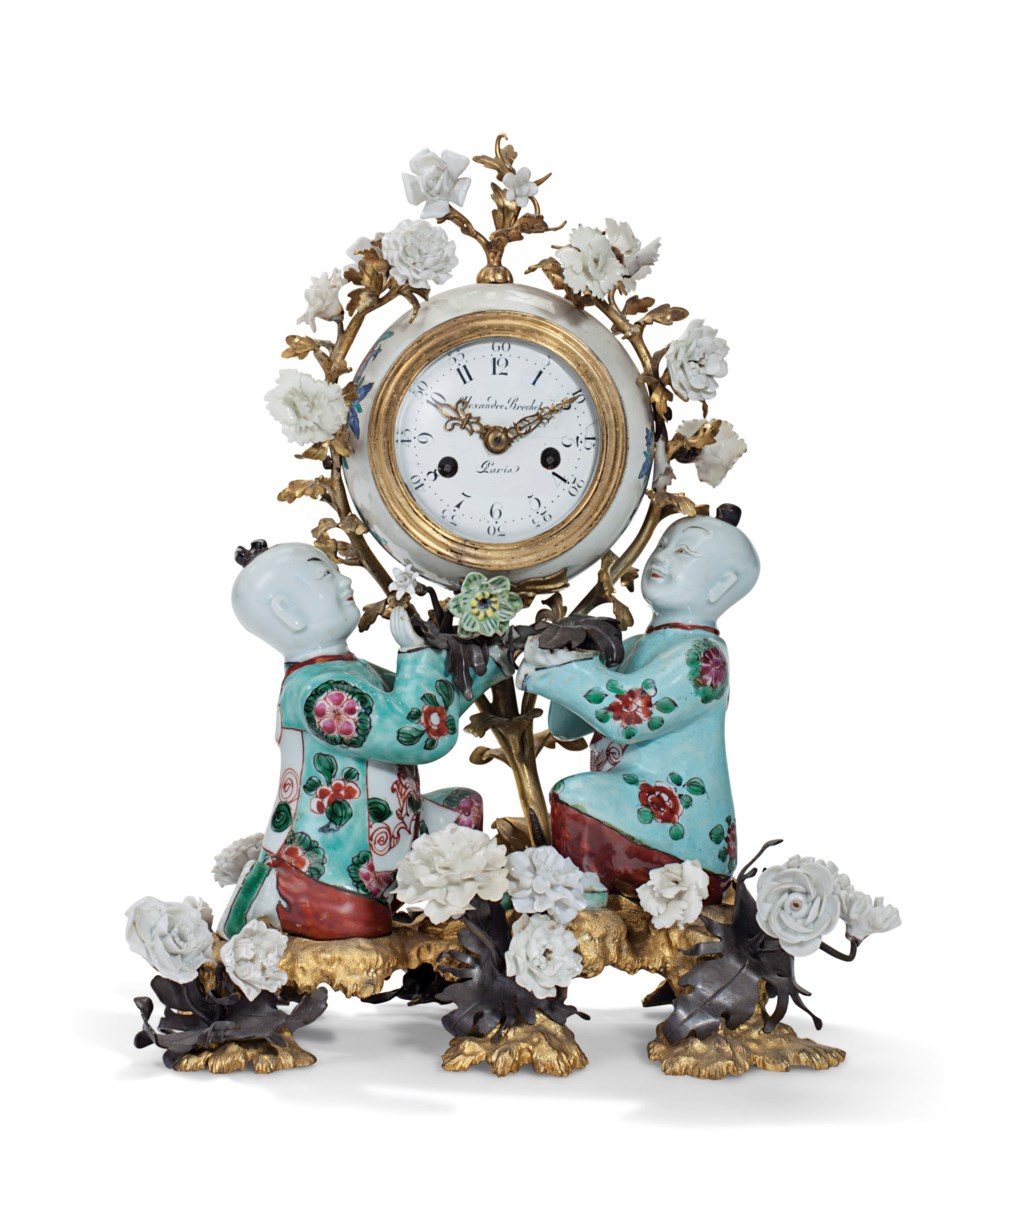 A LOUIS XV ORMOLU AND PATINATED BRONZE-MOUNTED CHINESE AND CHANTILLY PORCELAIN MANTEL CLOCK